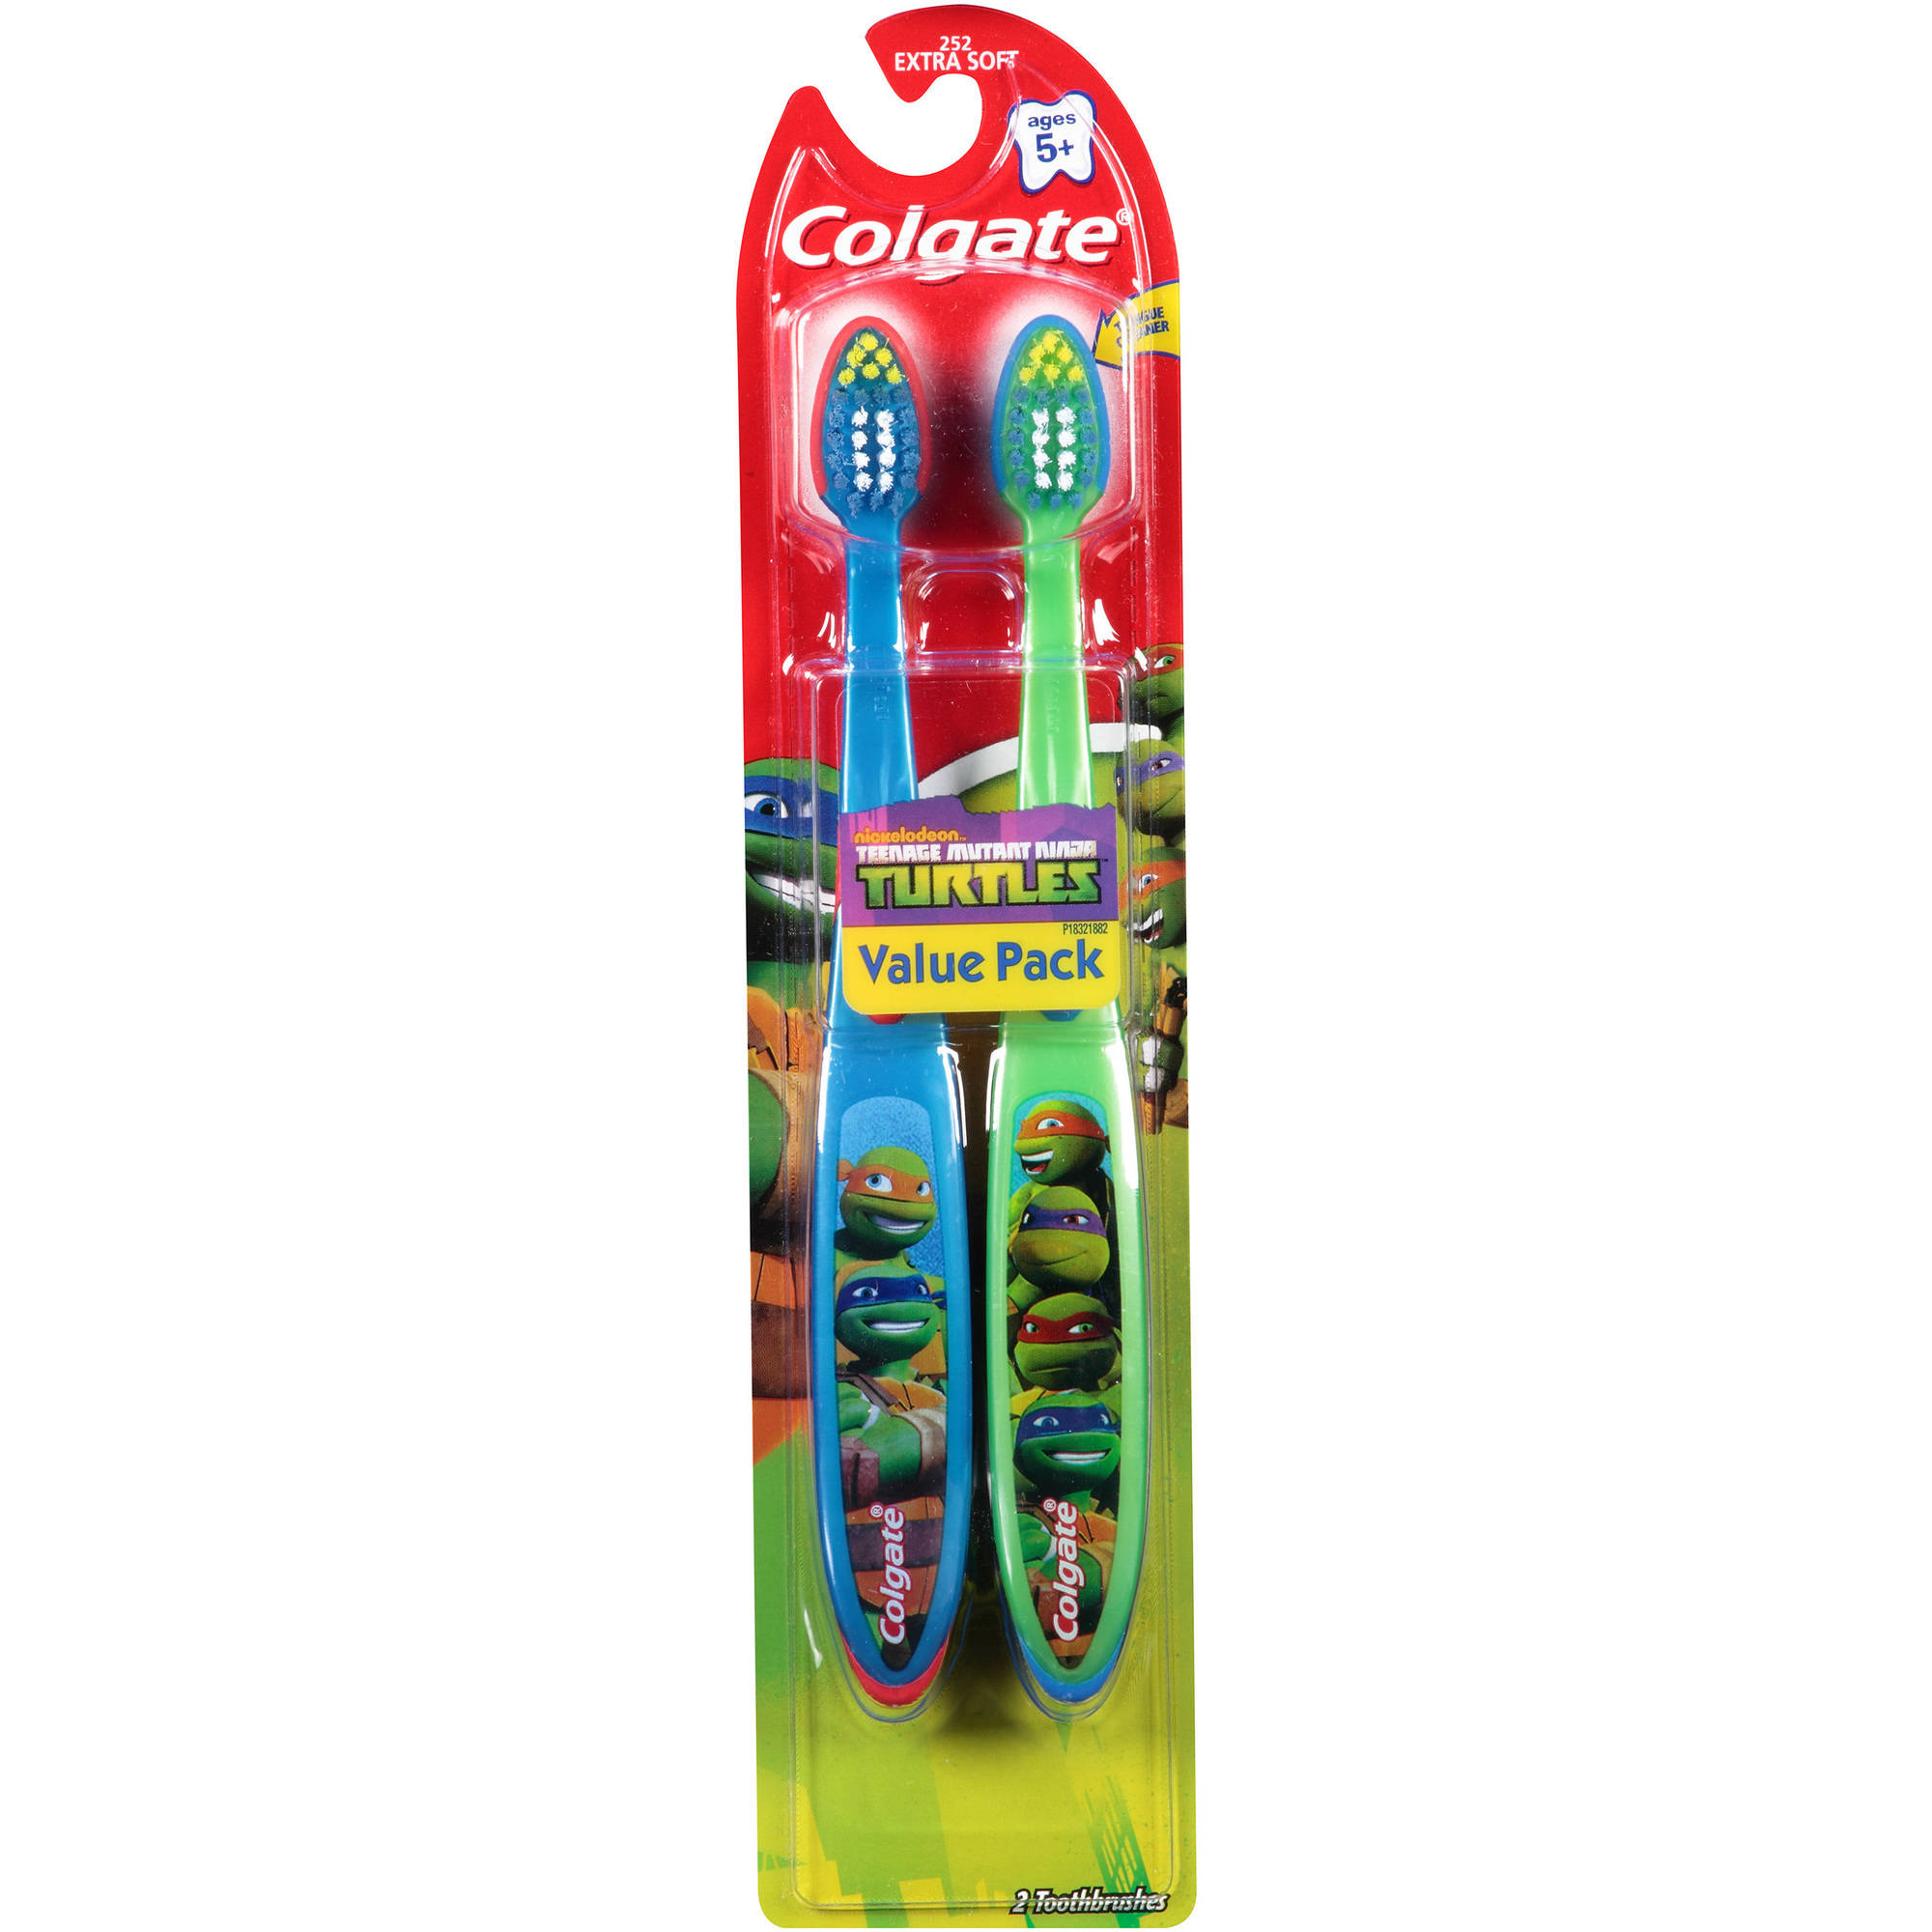 Colgate Nickelodeon Teenage Mutant Ninja Turtles Extra Soft Toothbrushes, 2 count